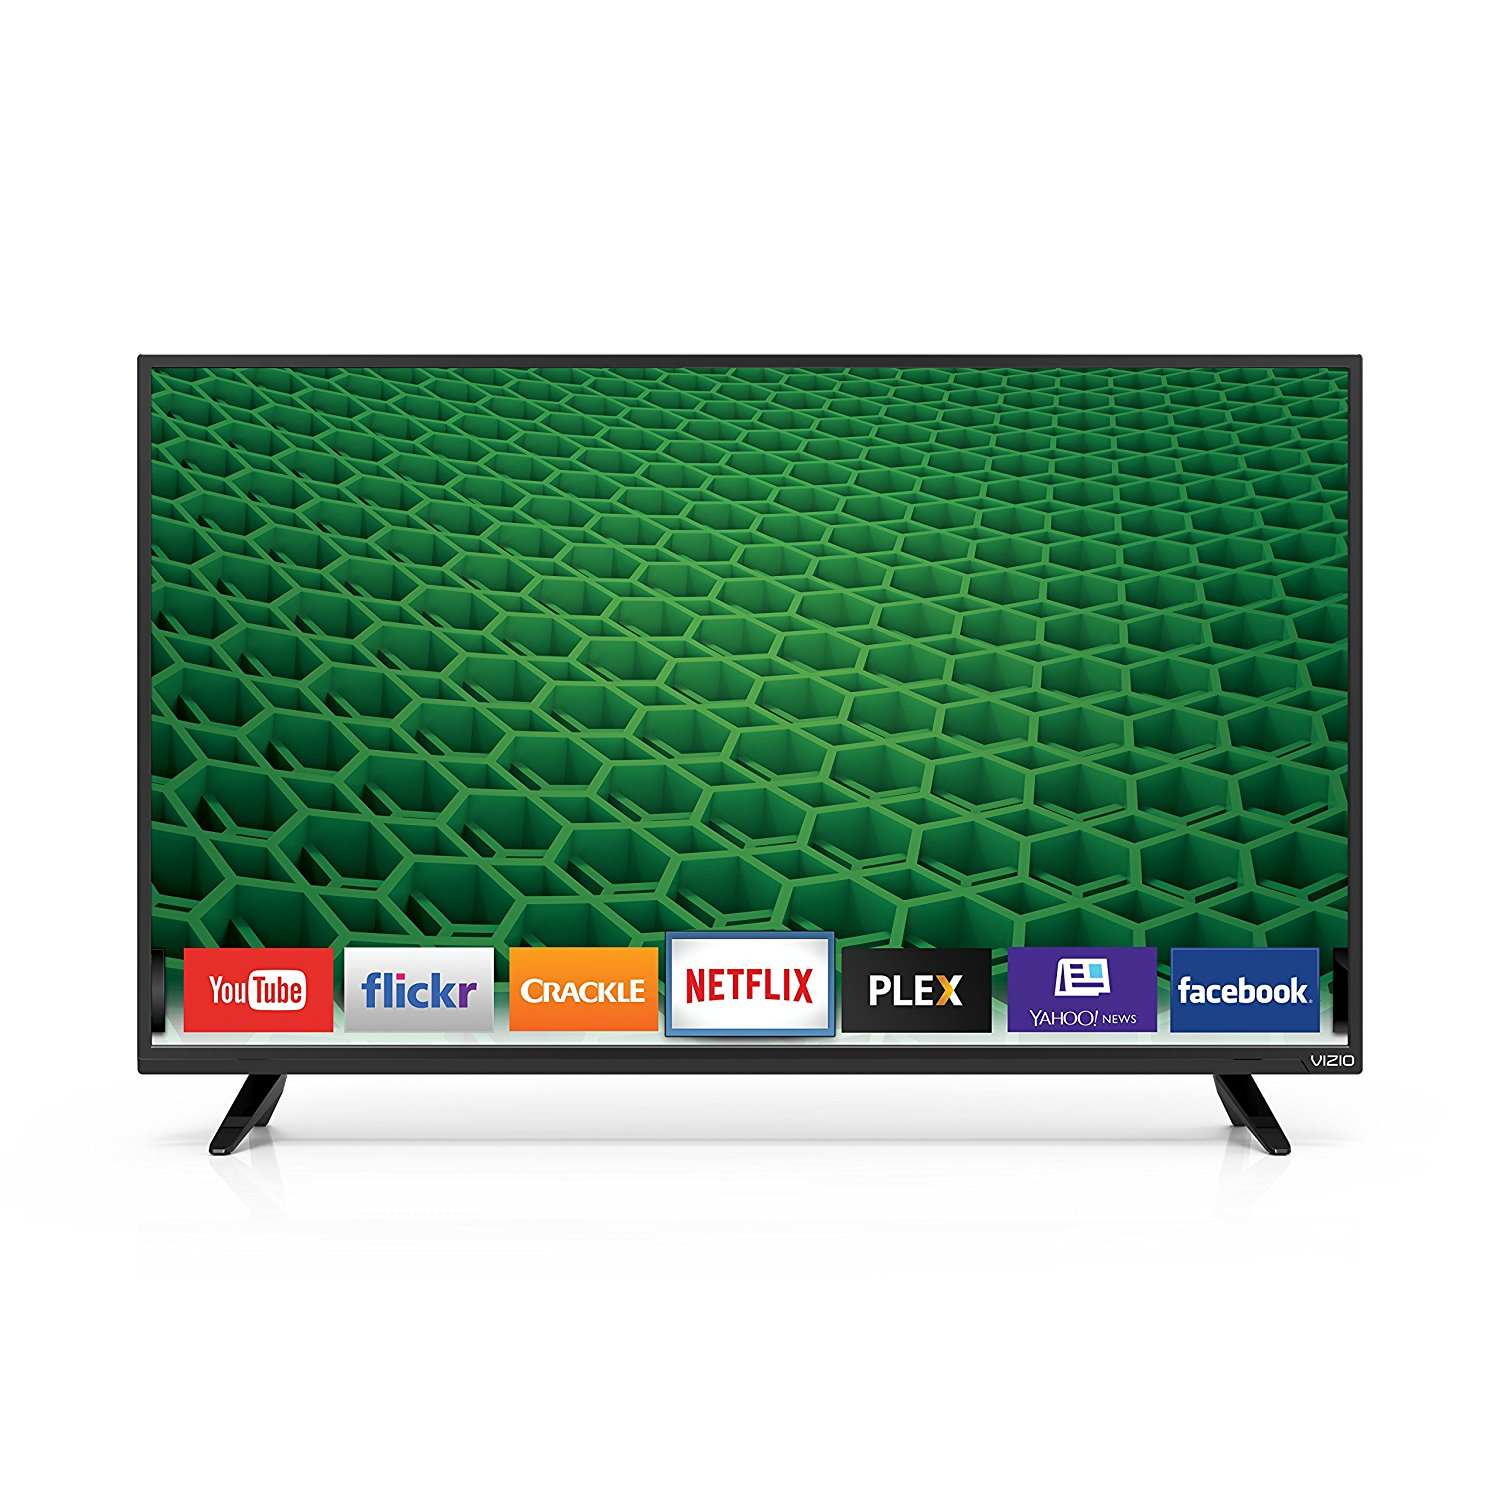 40 Inch Smart Tv Deals Vizio 40 Inch Led Smart Tv